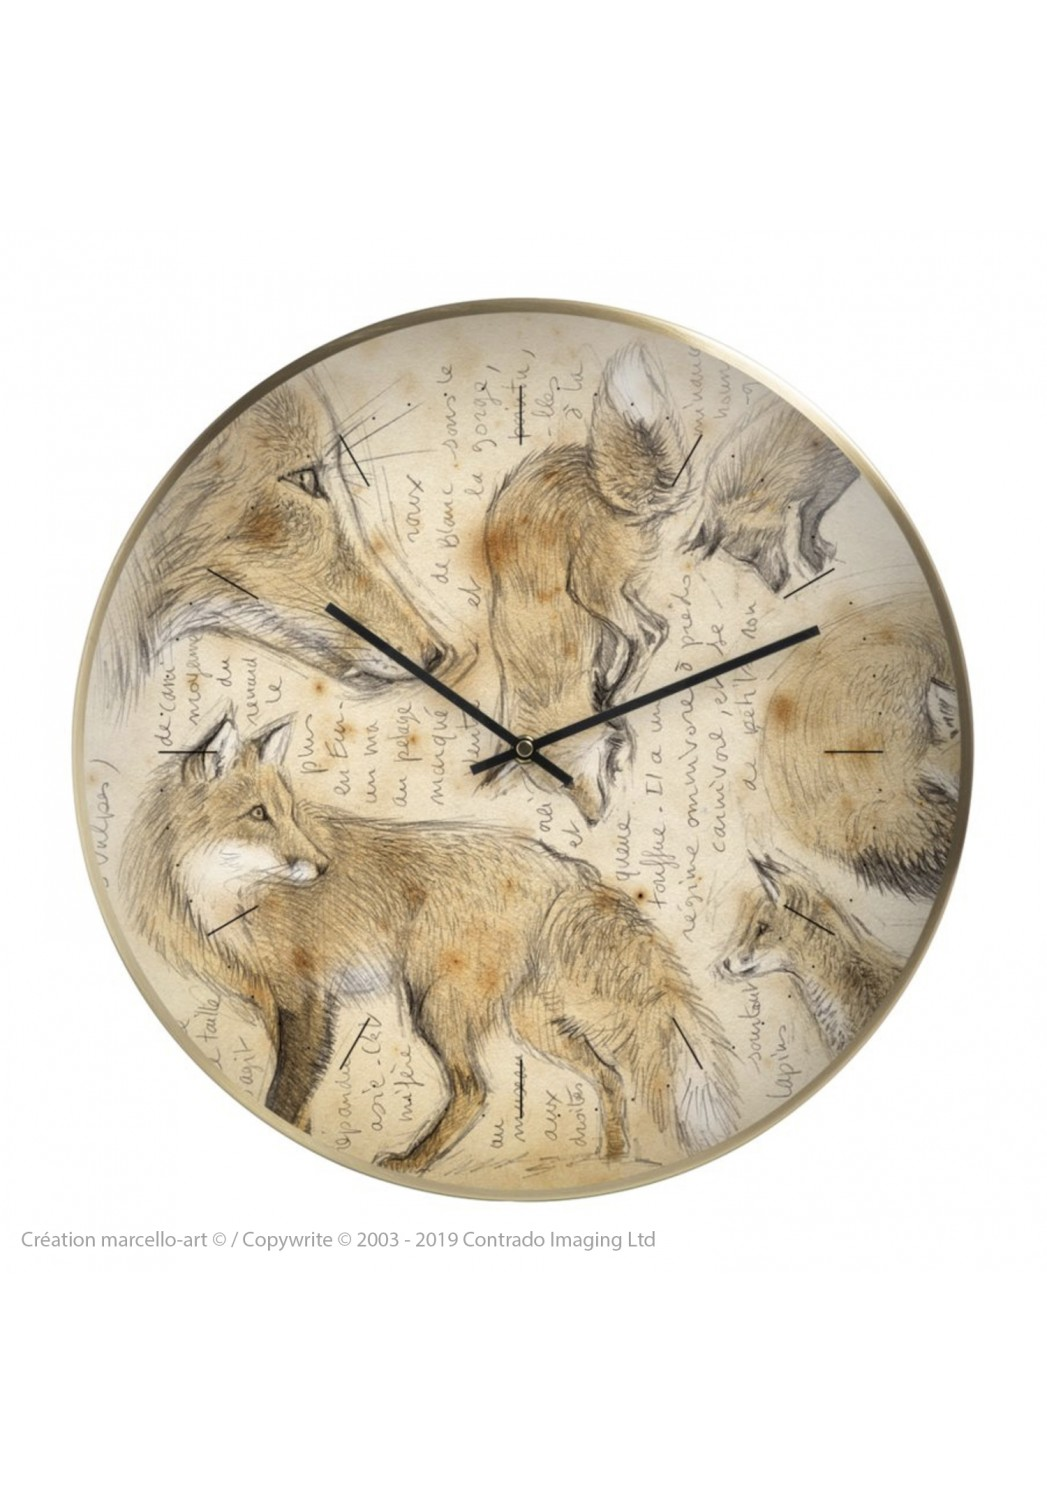 Marcello-art: Decoration accessoiries Wall clock 336 Red fox